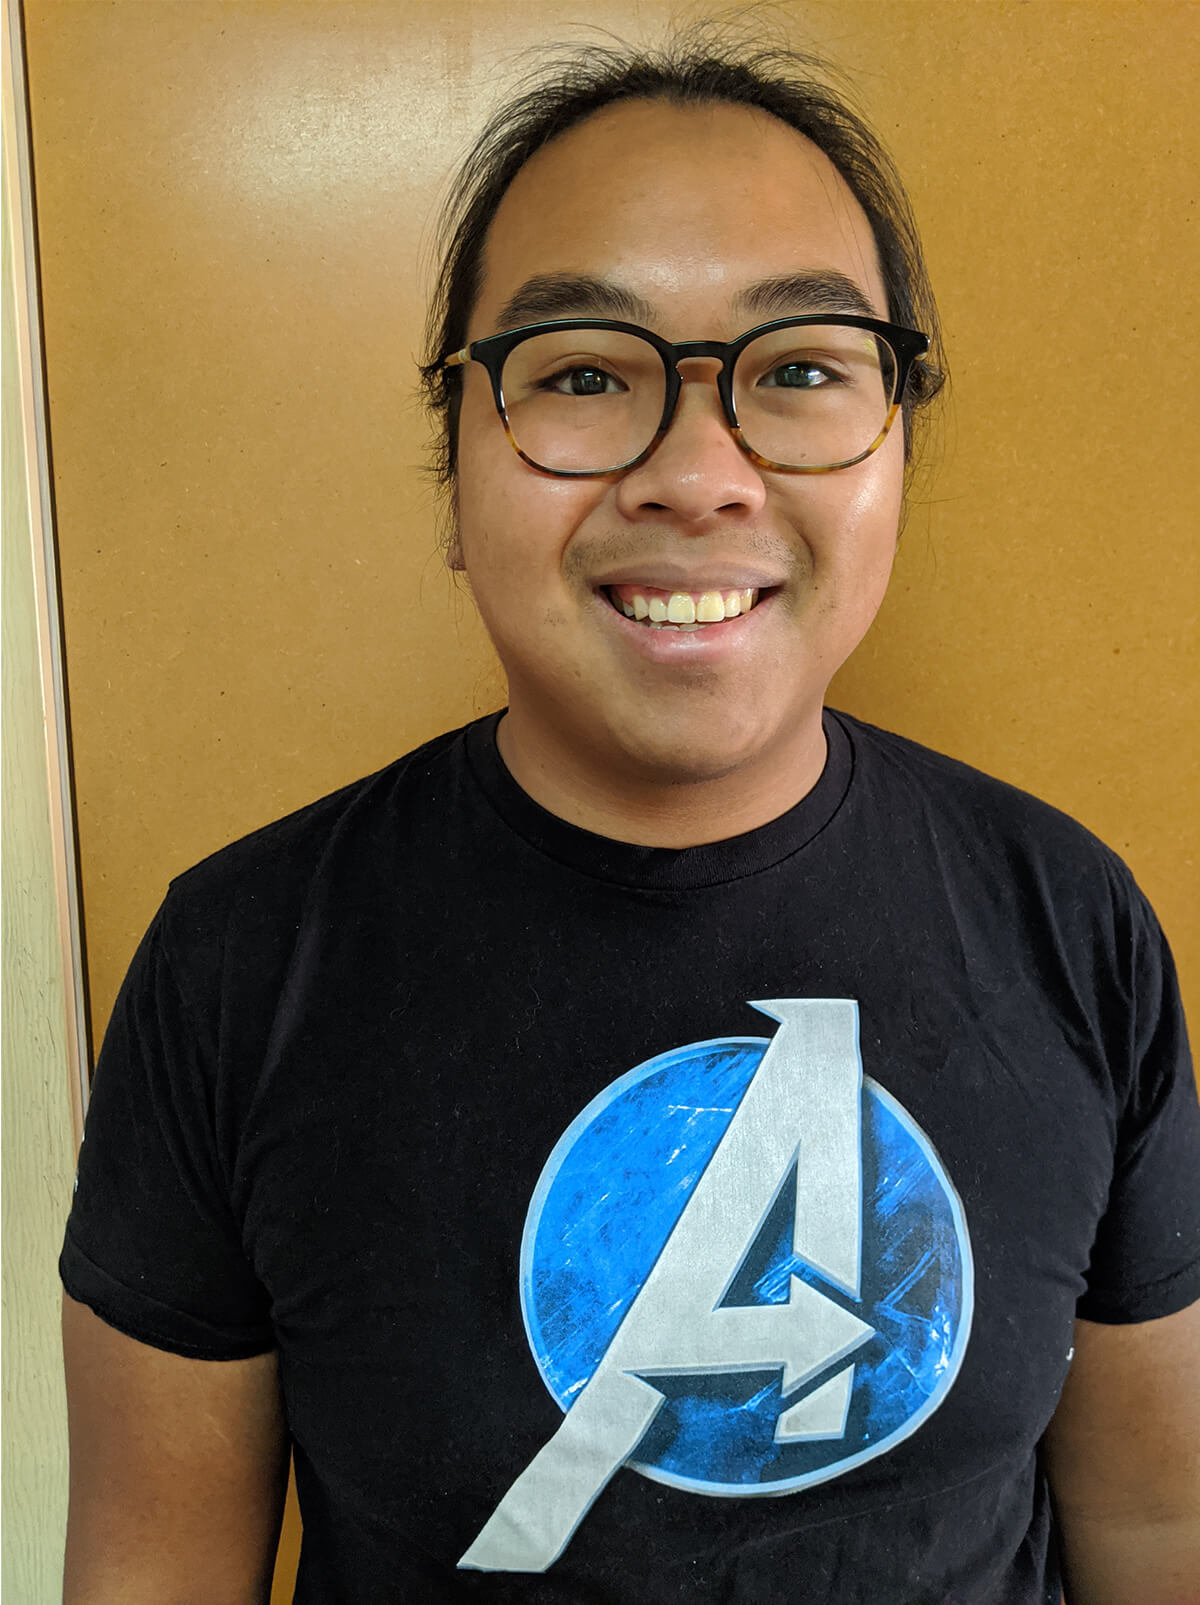 DigiPen graduate Kevin Do poses in an Avengers t-shirt